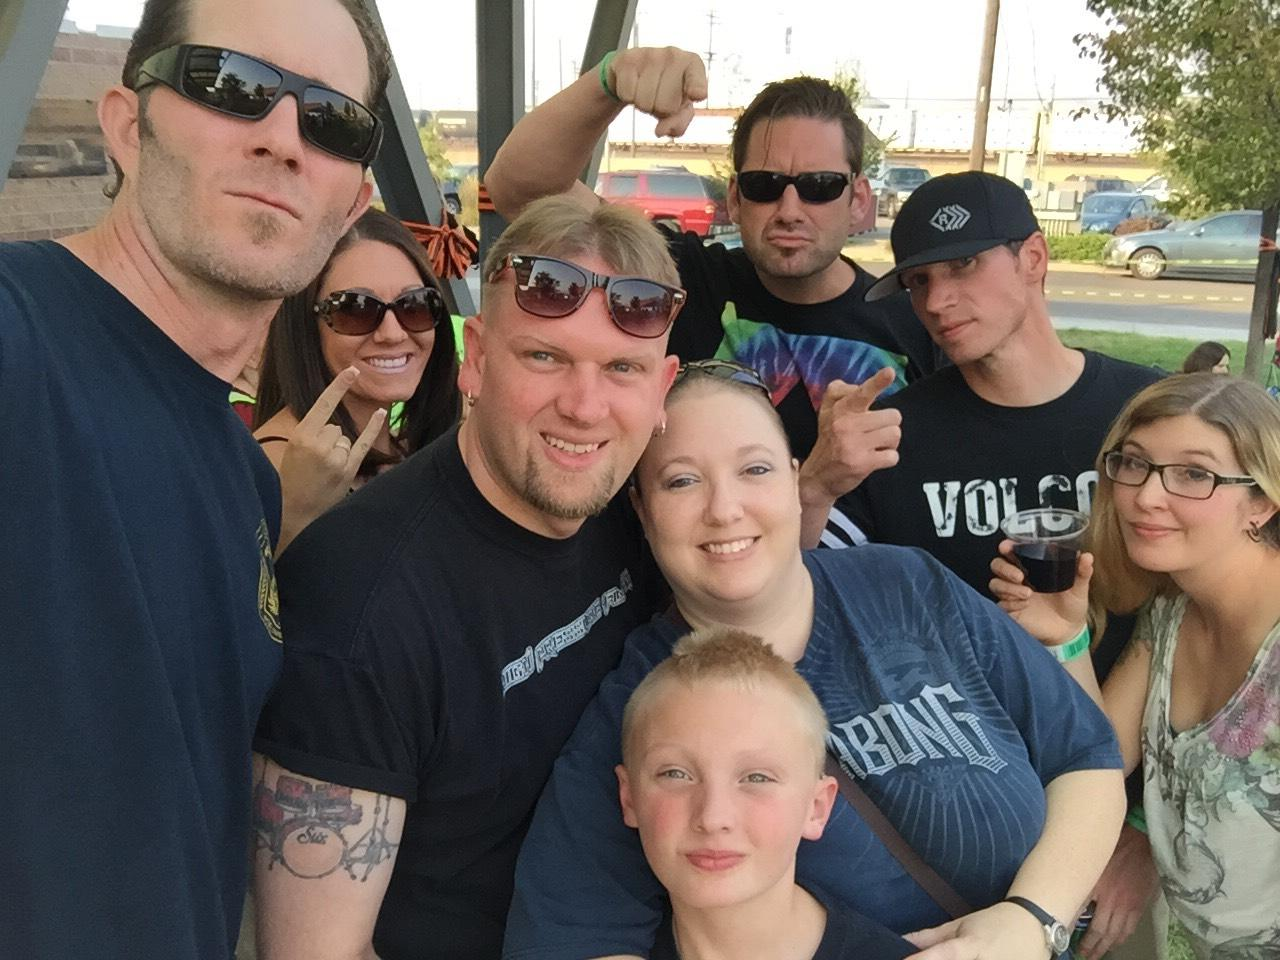 Craig Schmidt of West Jordan died from  injuries he sustained after crashing his motorcycle on Bangerter Highway.{&amp;nbsp;}(Photo: James Crocker)<p></p>